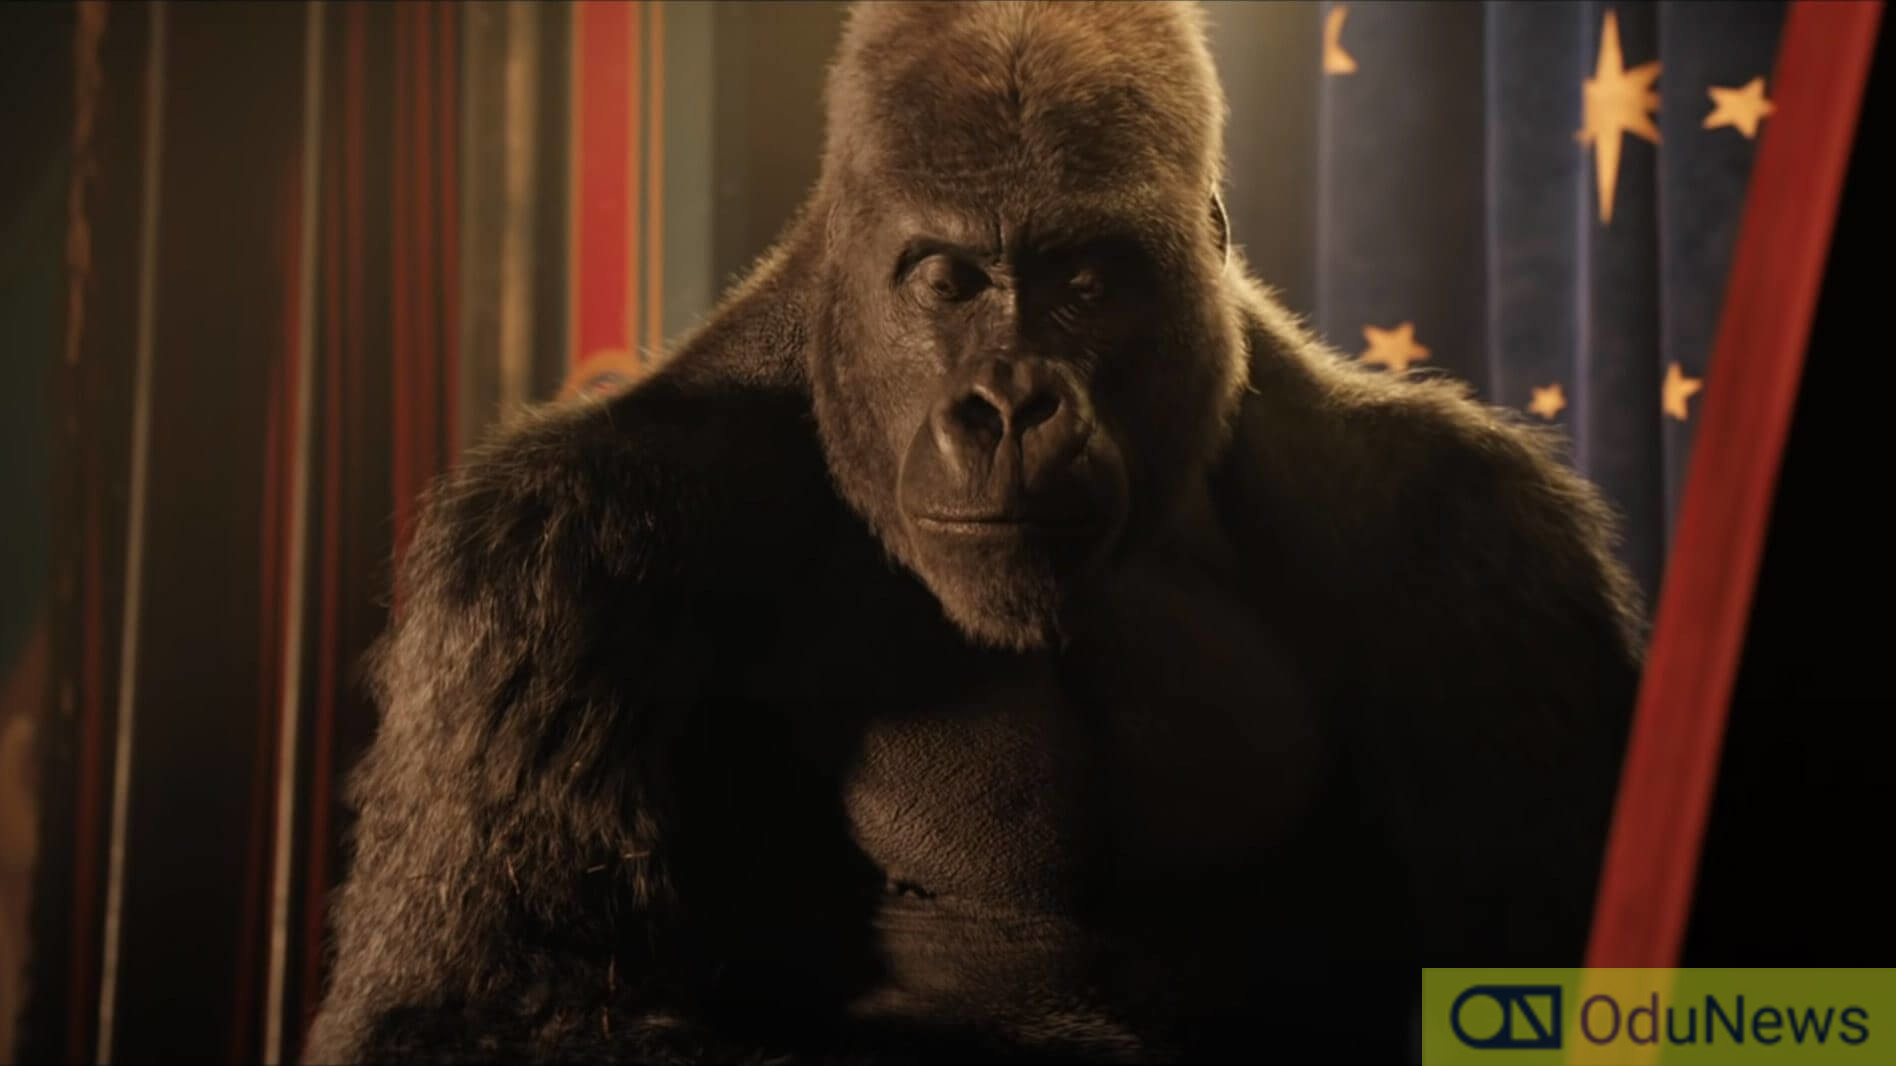 The Silverback gorilla known as Ivan (voiced by Sam Rockwell)